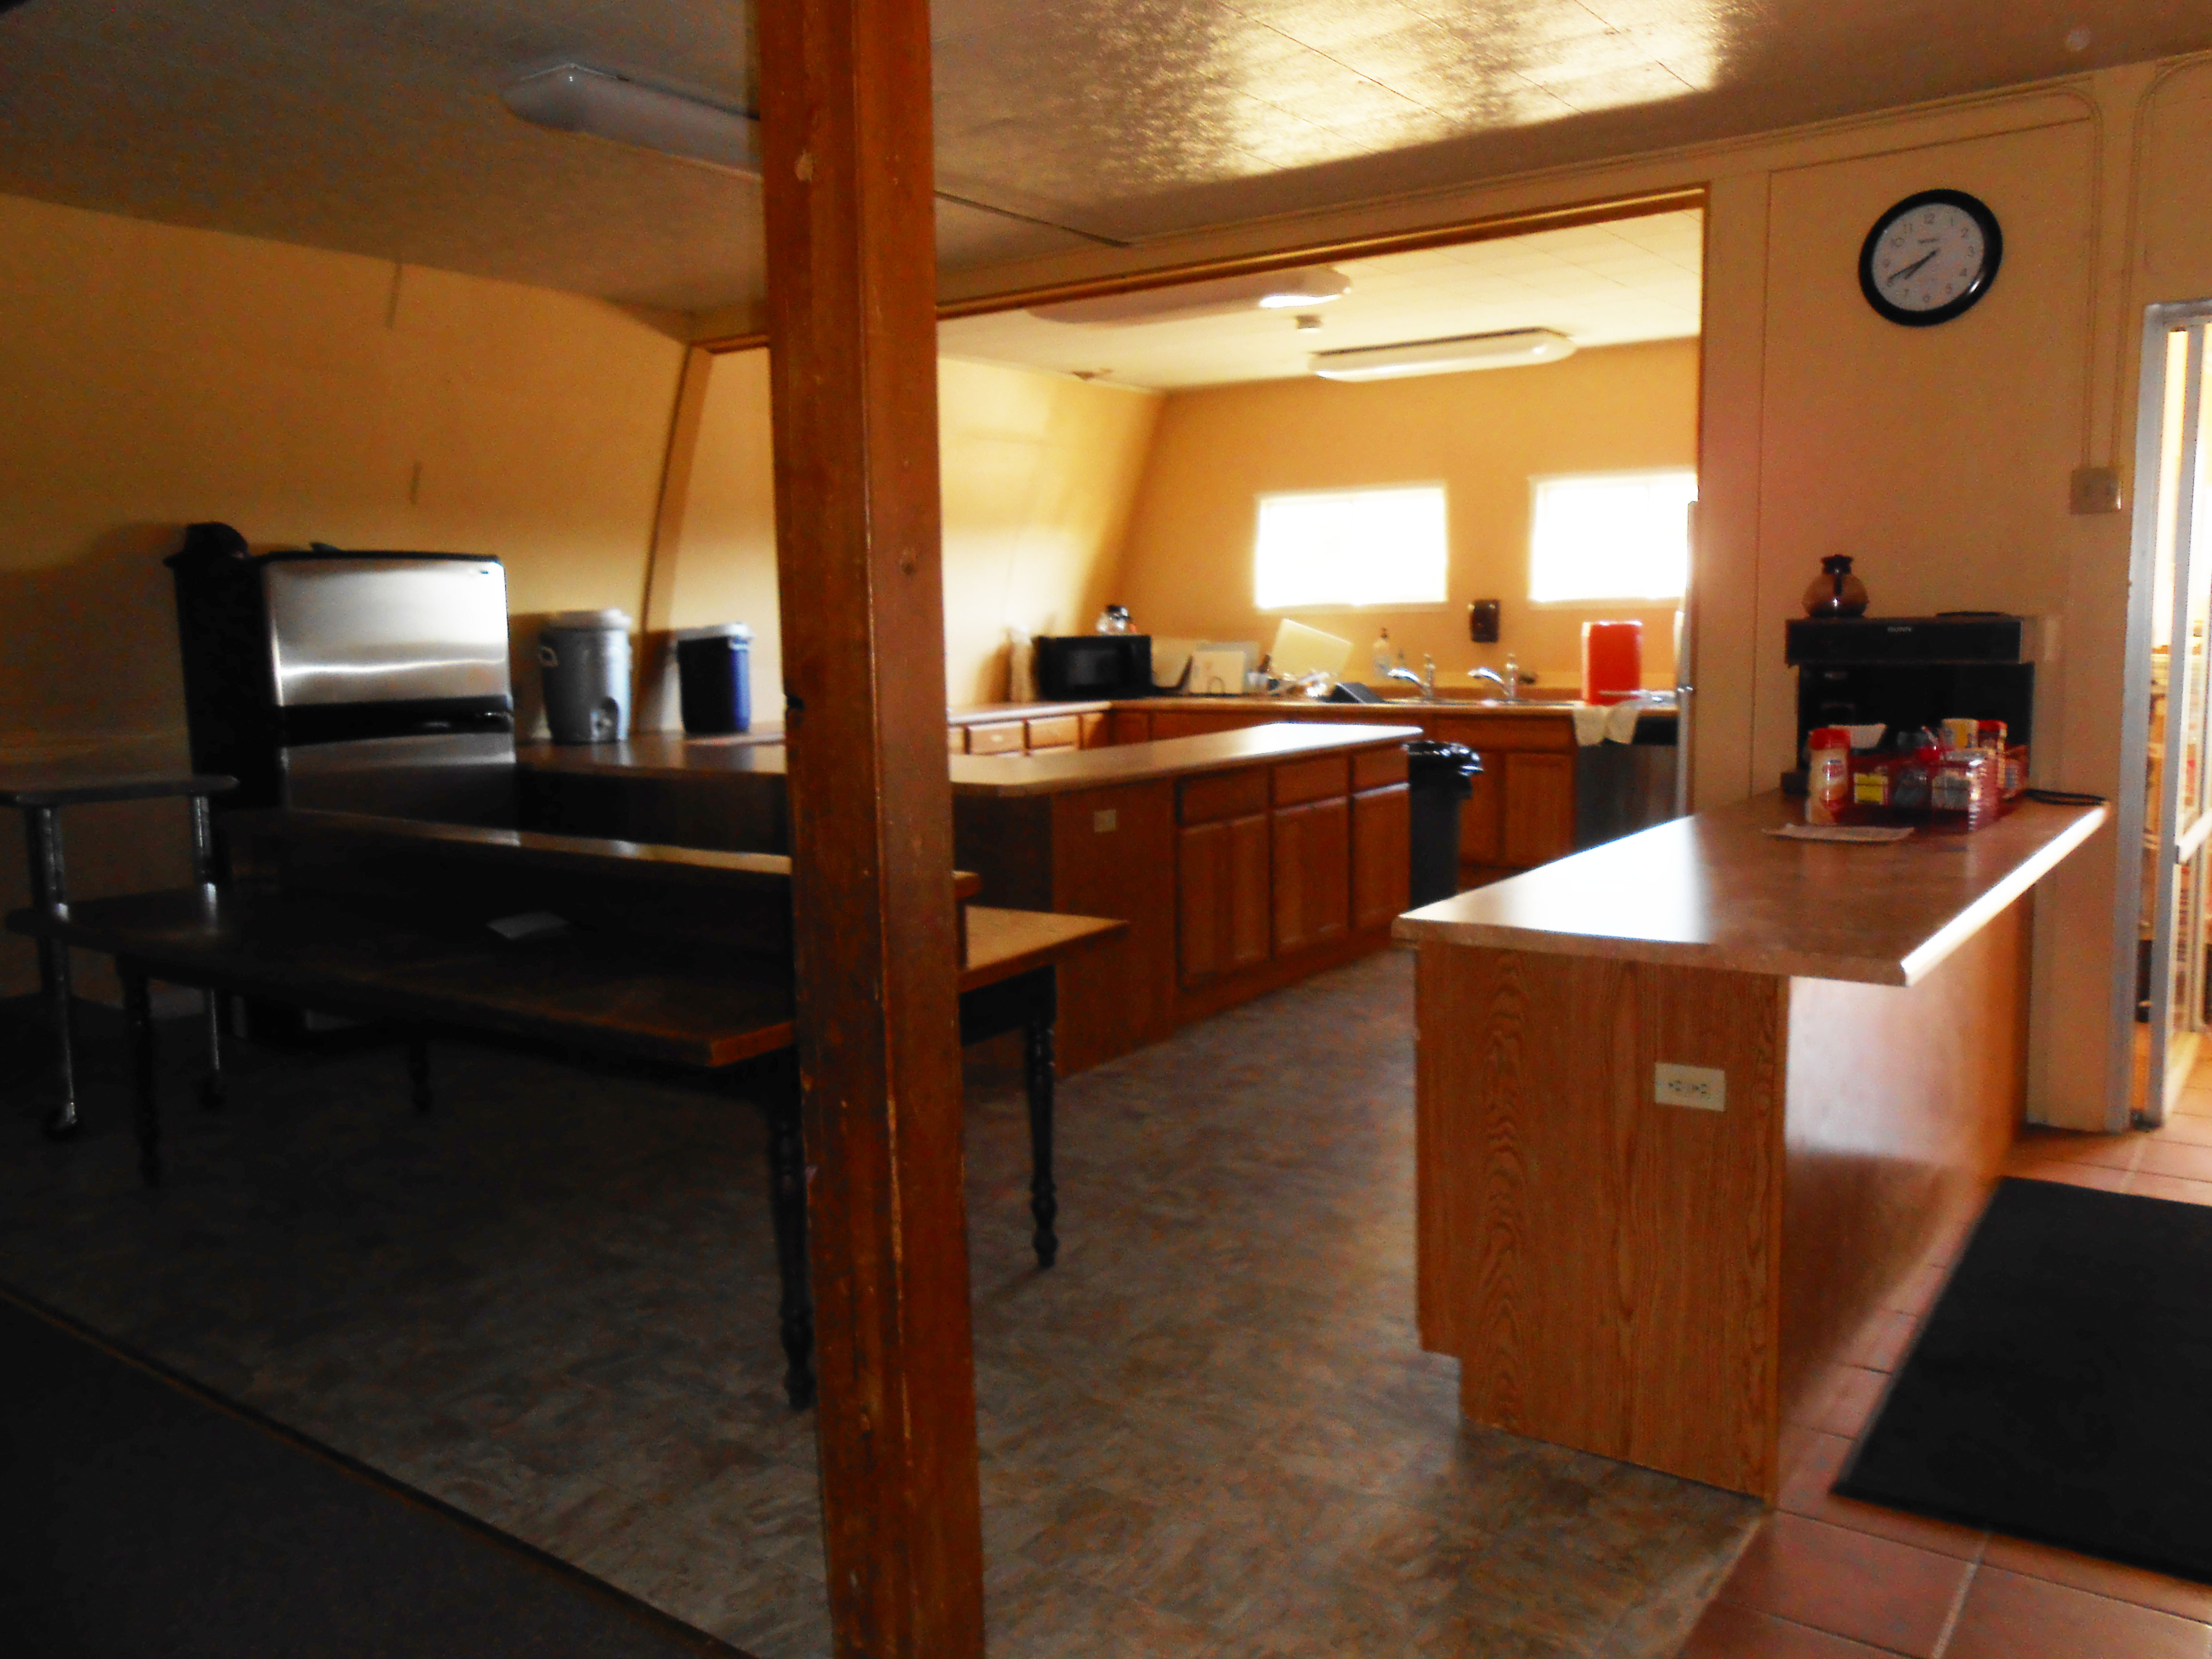 Fairplay Community Center - Kitchen Area